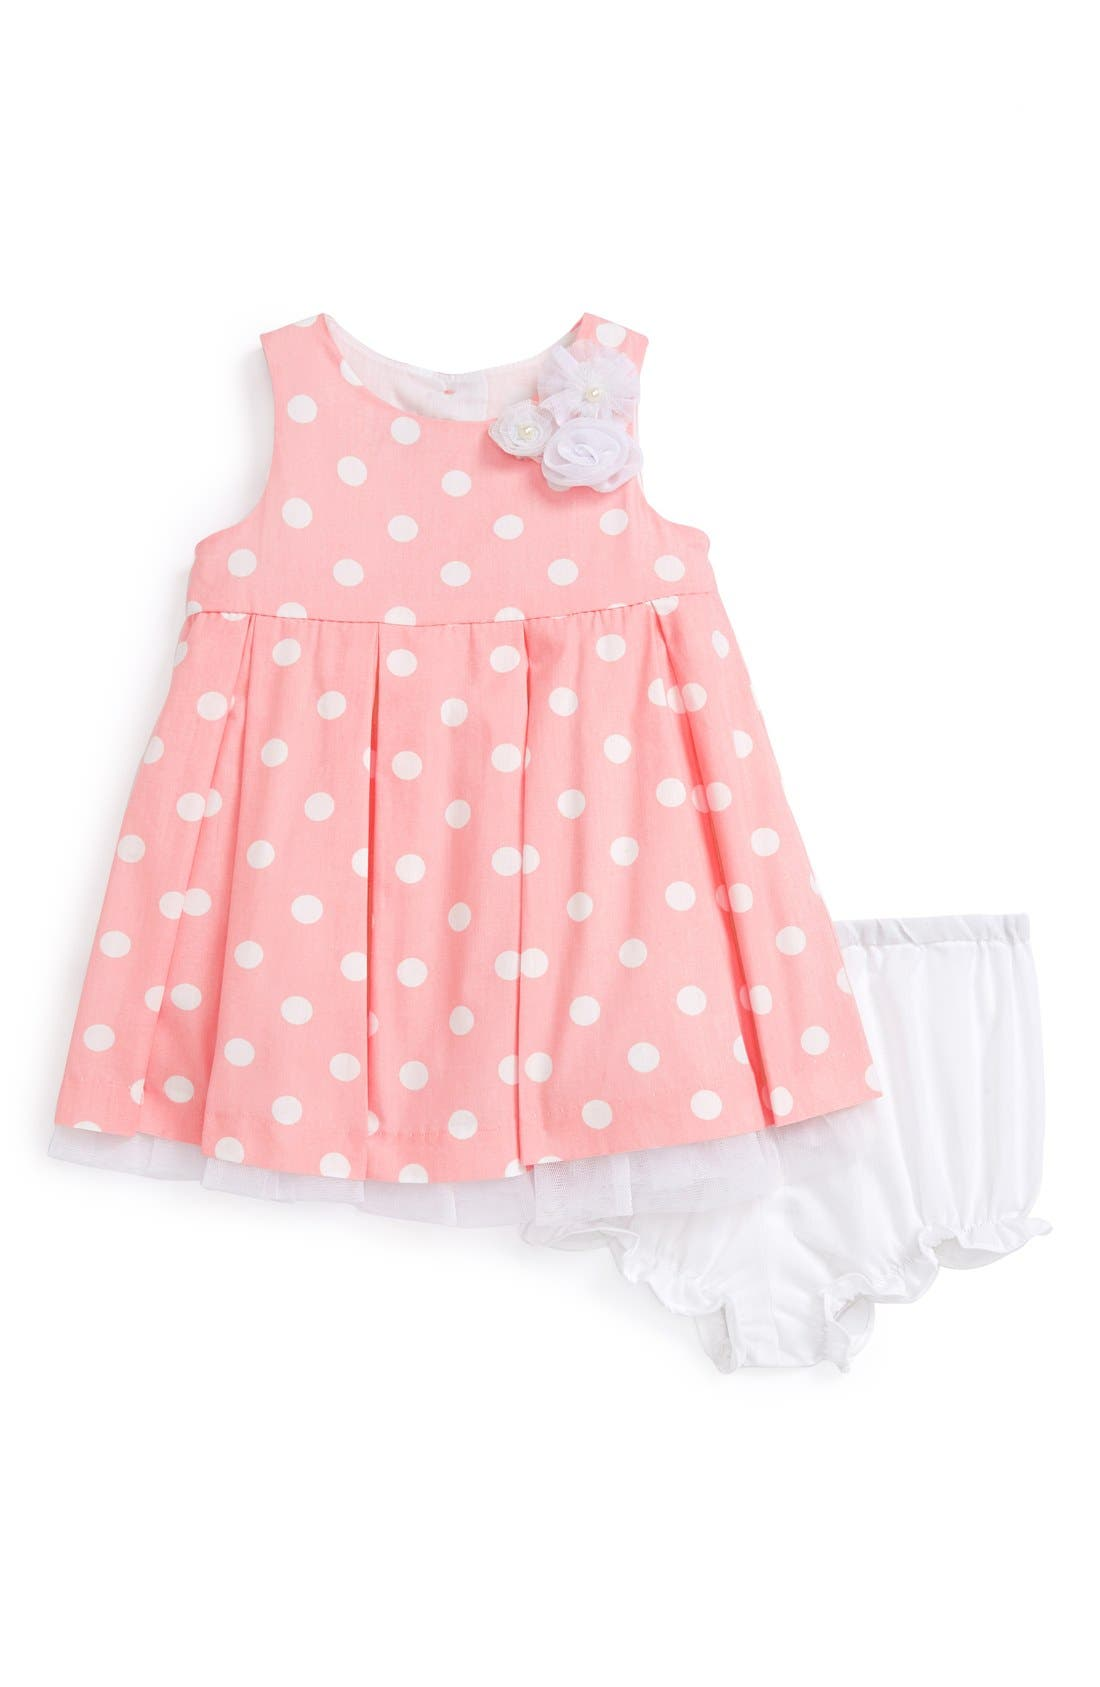 Alternate Image 1 Selected - Pippa & Julie Polka Dot Dress & Bloomers (Baby Girl)